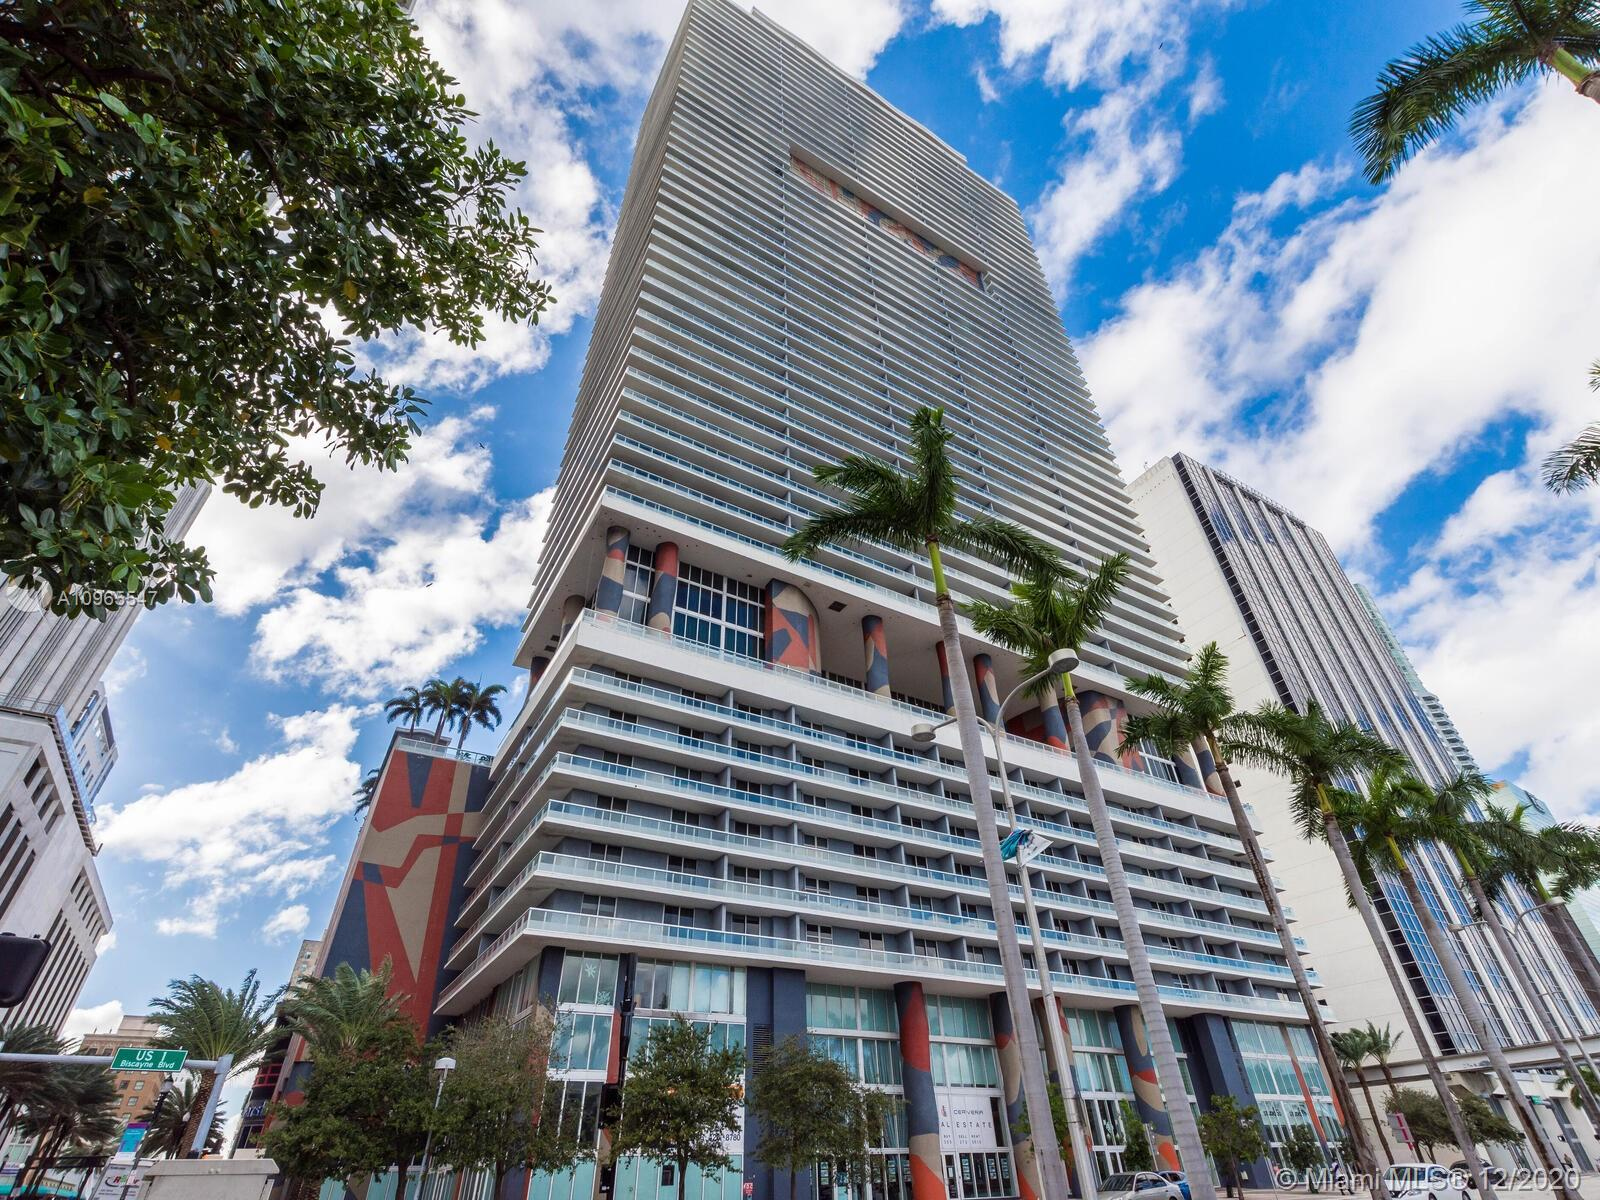 Great 2 bed, 2 bath, nicely furnished corner unit with a wrap around balcony, from which you can enjoy beautiful water and city views.. Enjoy first class amenities, Olympic size heated pool, party room, gym, 24 Hr concierge and valet parking. Location, location, walking distance to all shops, restaurants of Bayside and Brickell, nearby AAA Arena, Jorge Perez Museum and all bars along Biscayne Blvd. A must see!